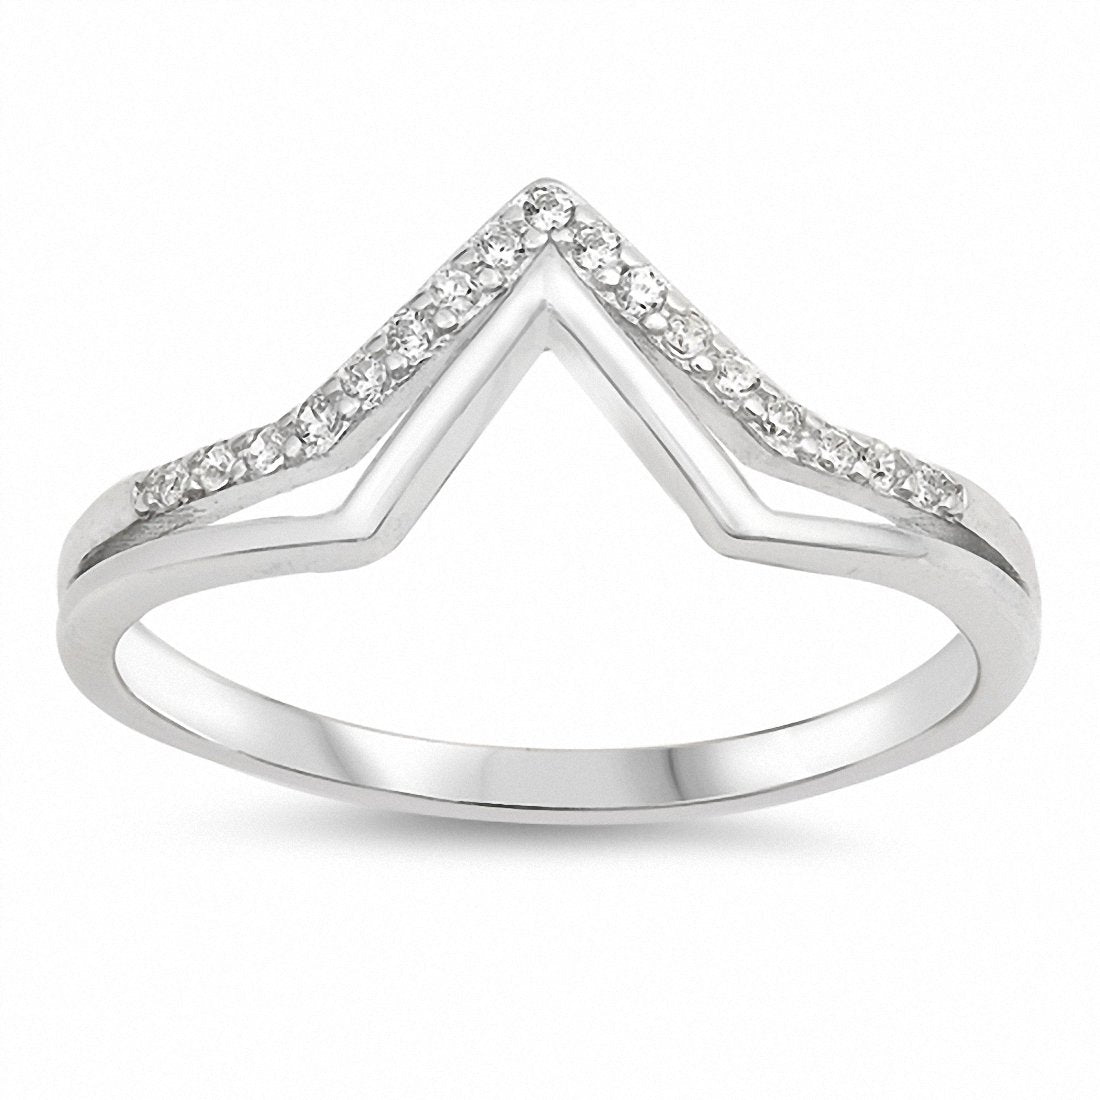 Double V Chevron Midi Ring Band Round Cubic Zirconia 925 Sterling Silver Choose Color